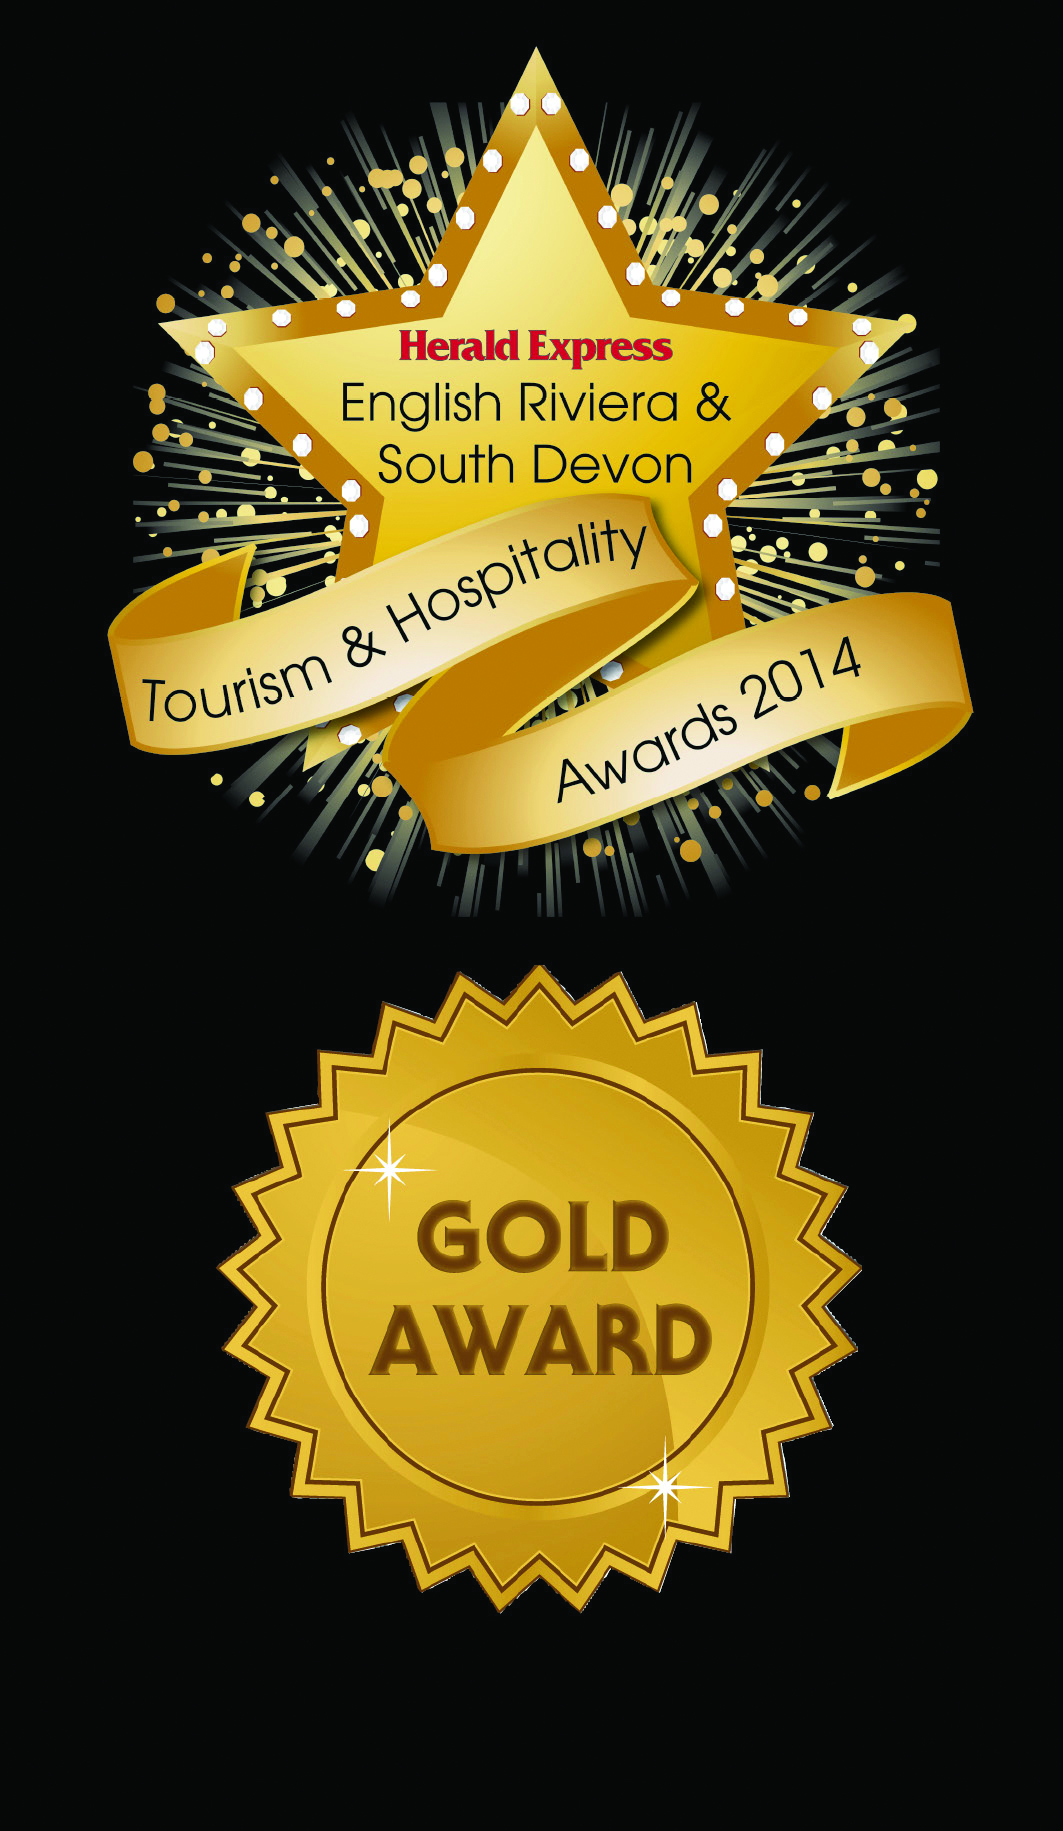 Herald Express Tourism & Hospitality Awards 2014, Gold award